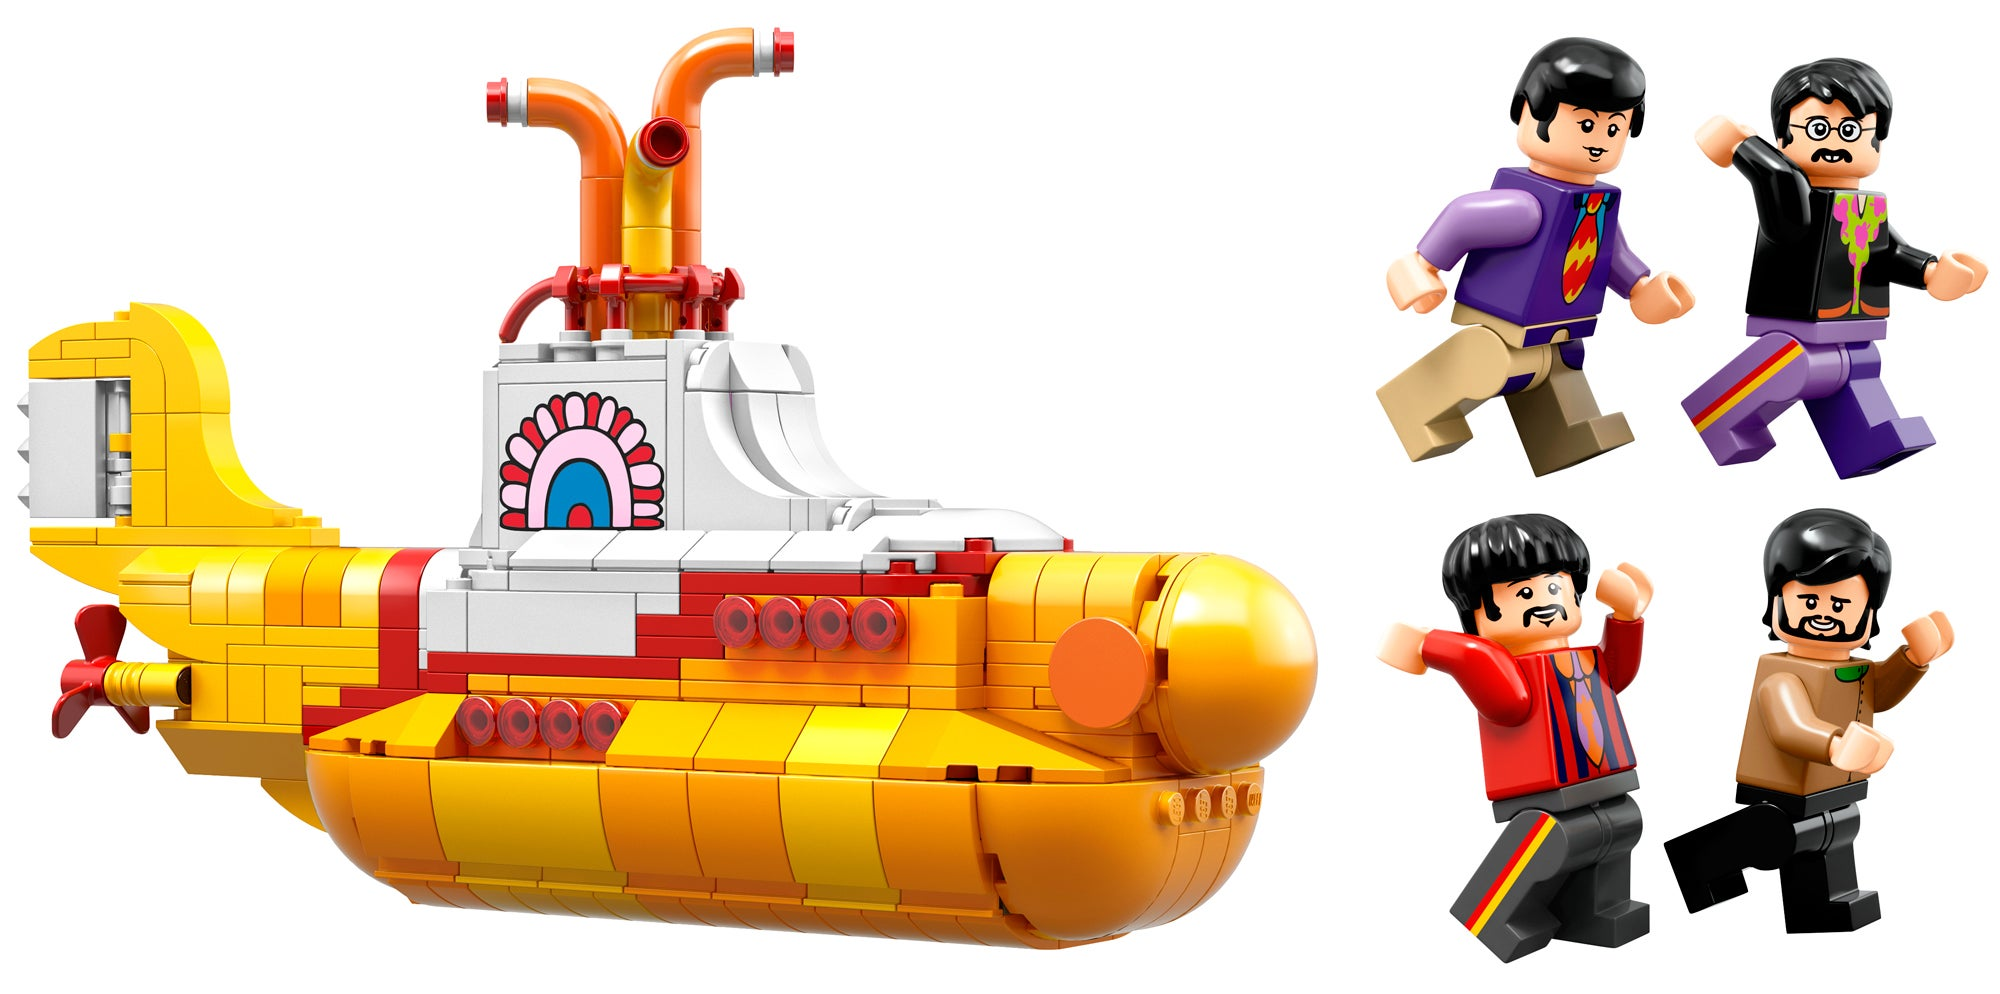 LEGO's New Yellow Submarine Comes With Four Perfect Beatles Minifigs